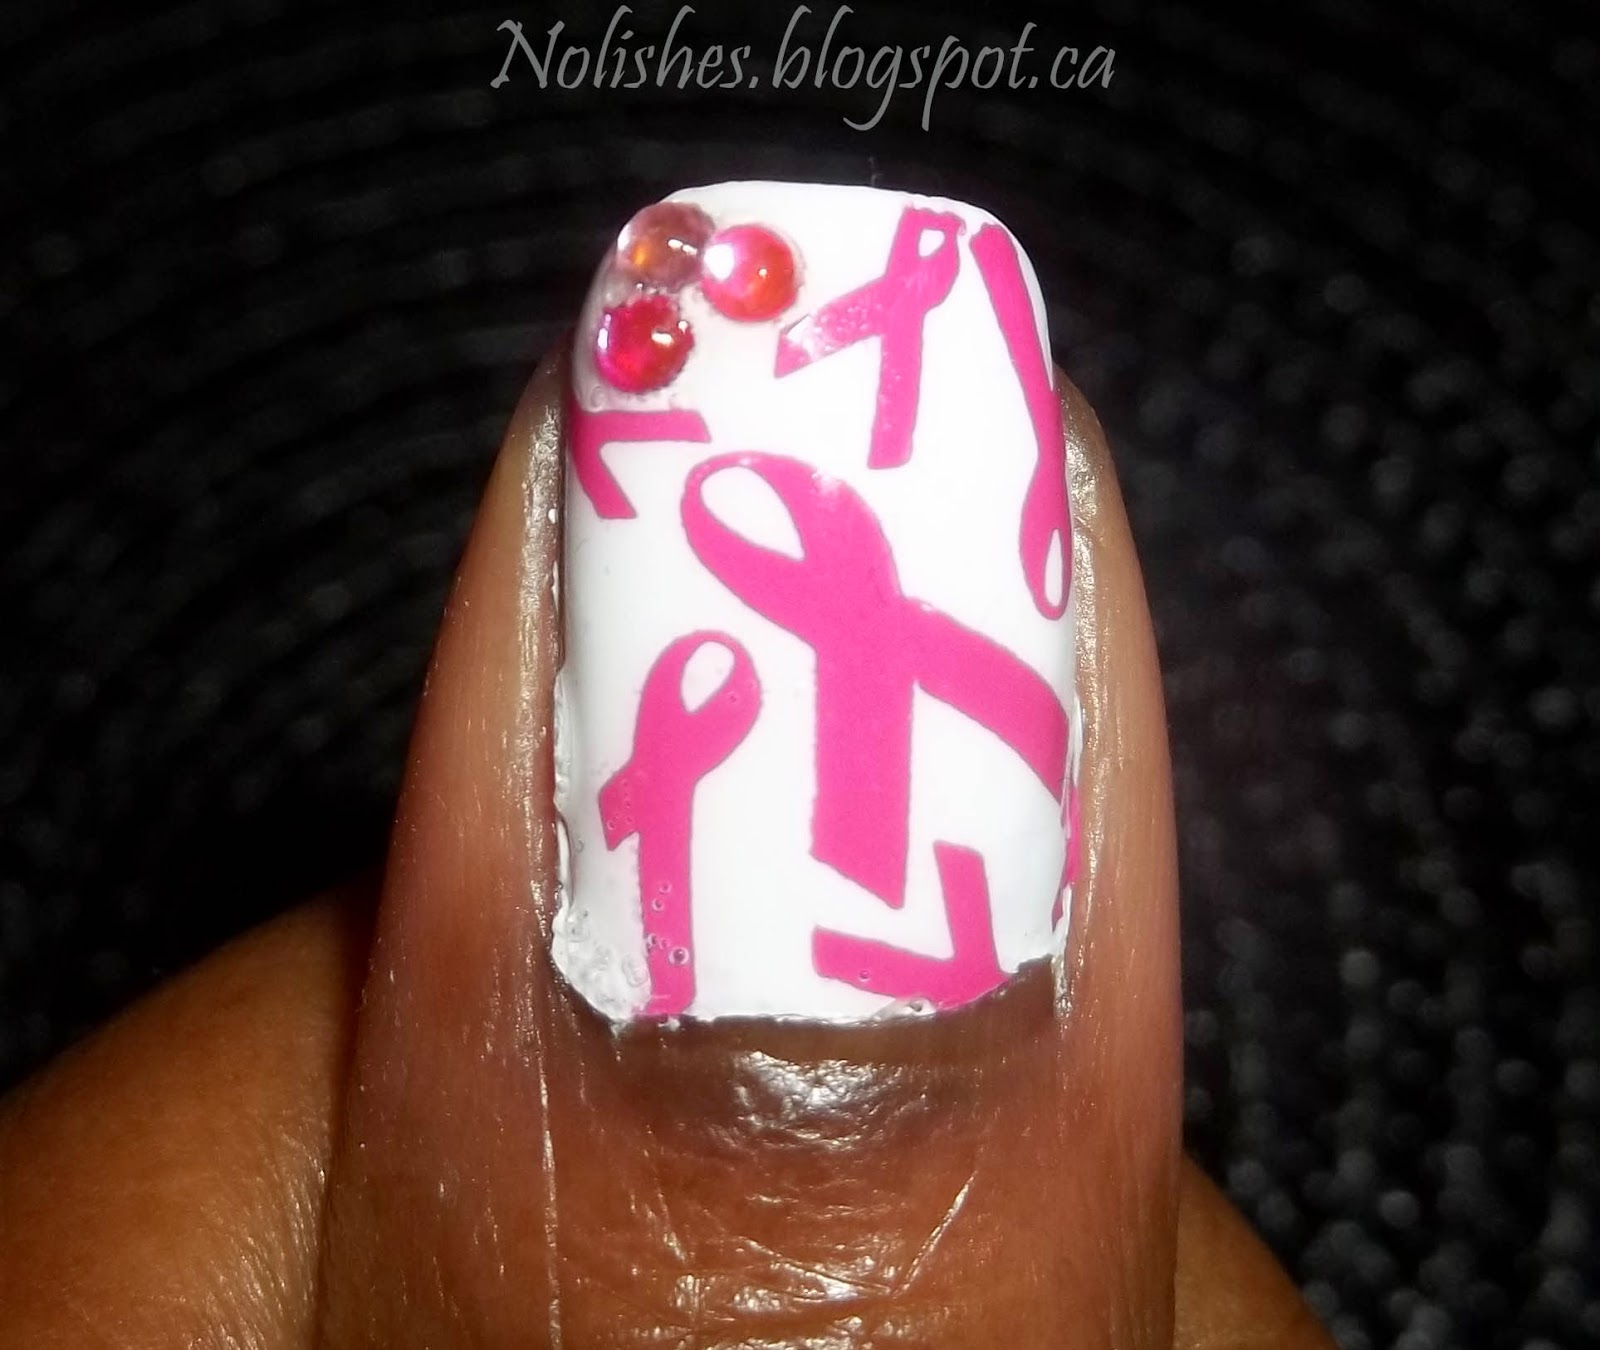 Pink and White Pink Ribbon Nail Stamping Manicure (Thumb Only) using Sally Hansen Insta-Dri 'Presto Pink' and China Glaze 'White on White' stamped with Bundle Monster BM-321. Also featuring a few nail art rhinestones in various shades of pink